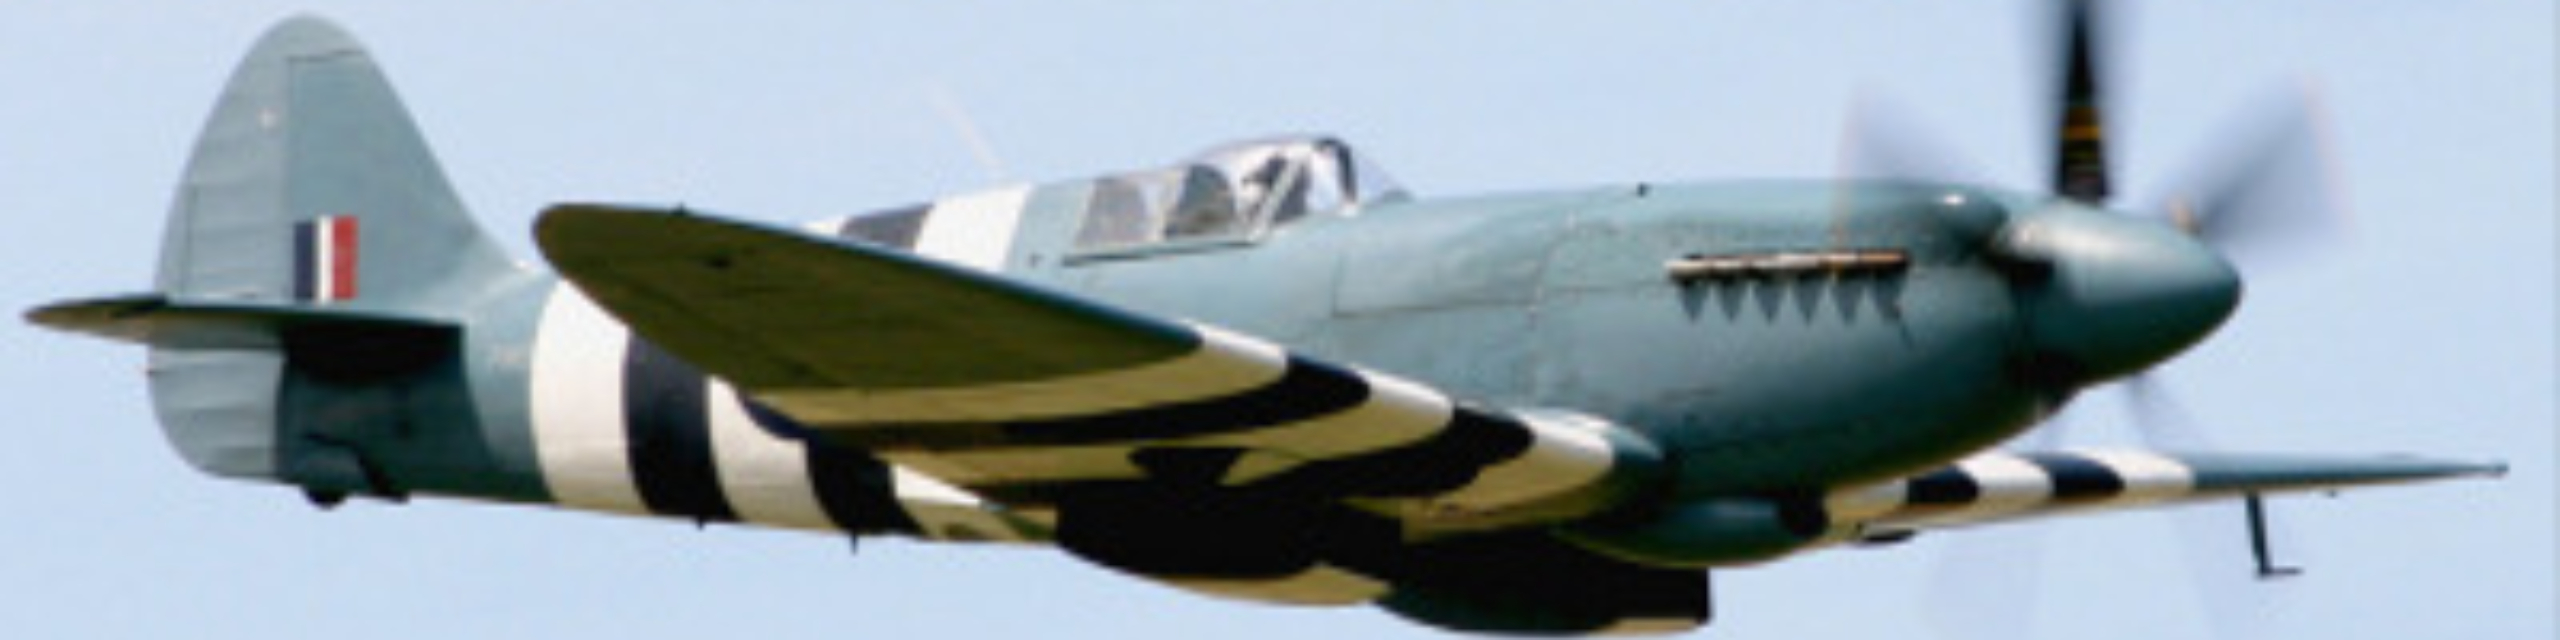 Spitfire Mk 19 flying in the sky